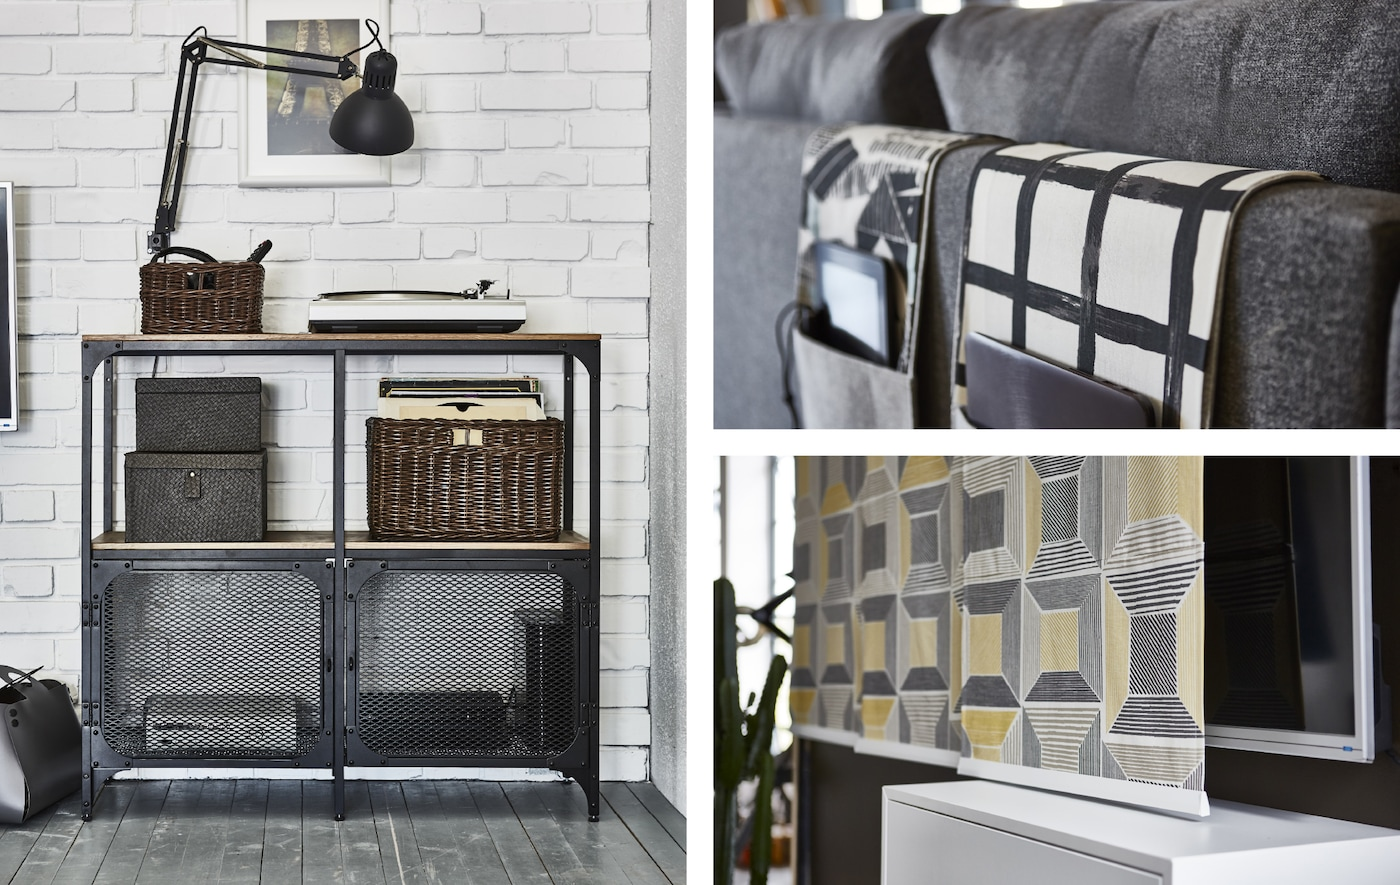 IKEA has living room ideas to help with your tech. An industrial style shelving unit like FJÄLLBO has solid pine shelves and metal mesh doors that let signals through. Put a basket on the top shelf to hold your remotes, too.